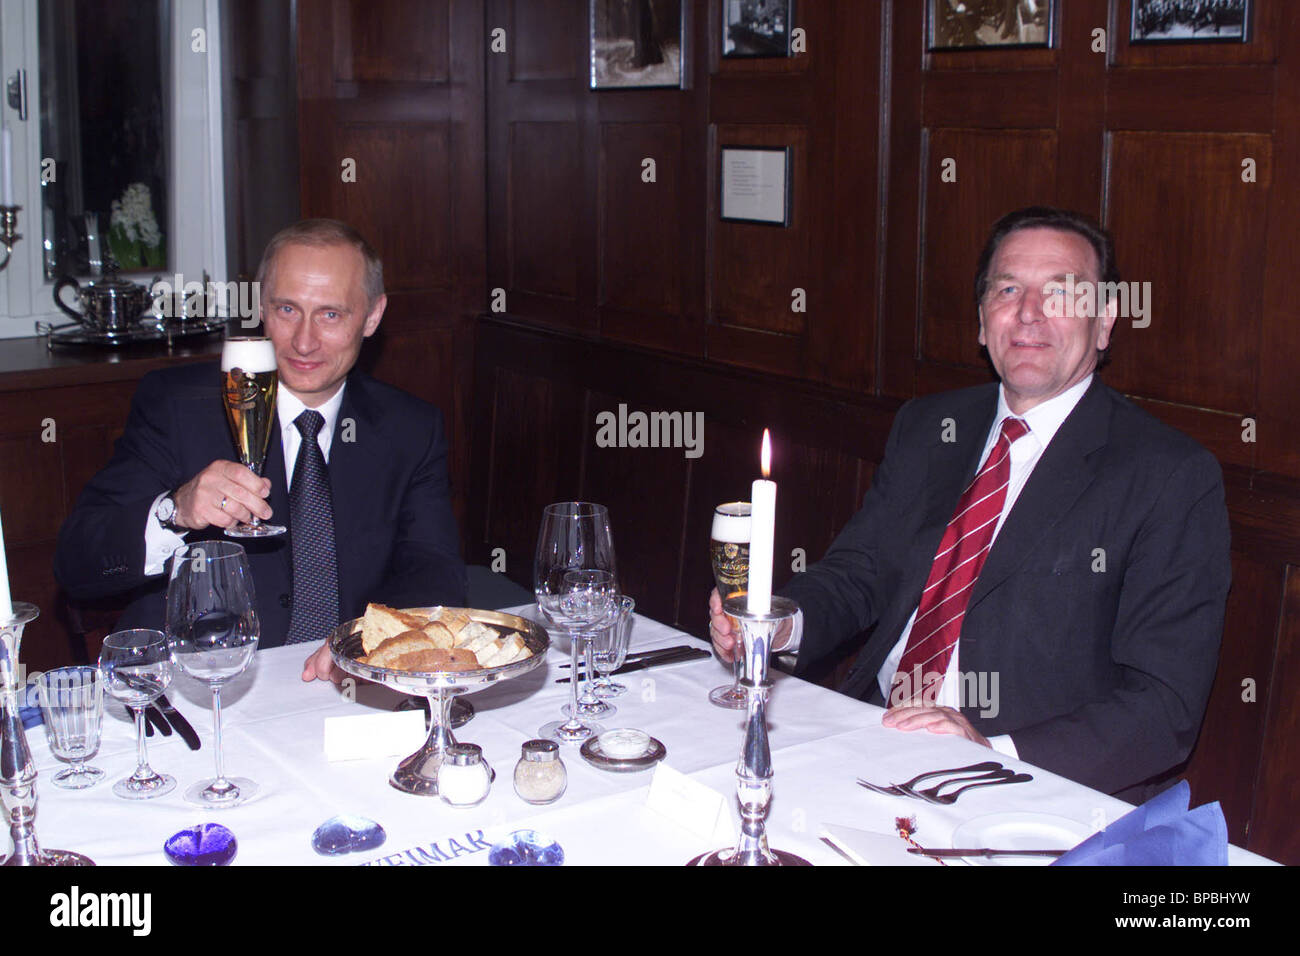 President Putin and Chancellor Schroeder have a dinner in the Old Weimar restaurant. - Stock Image